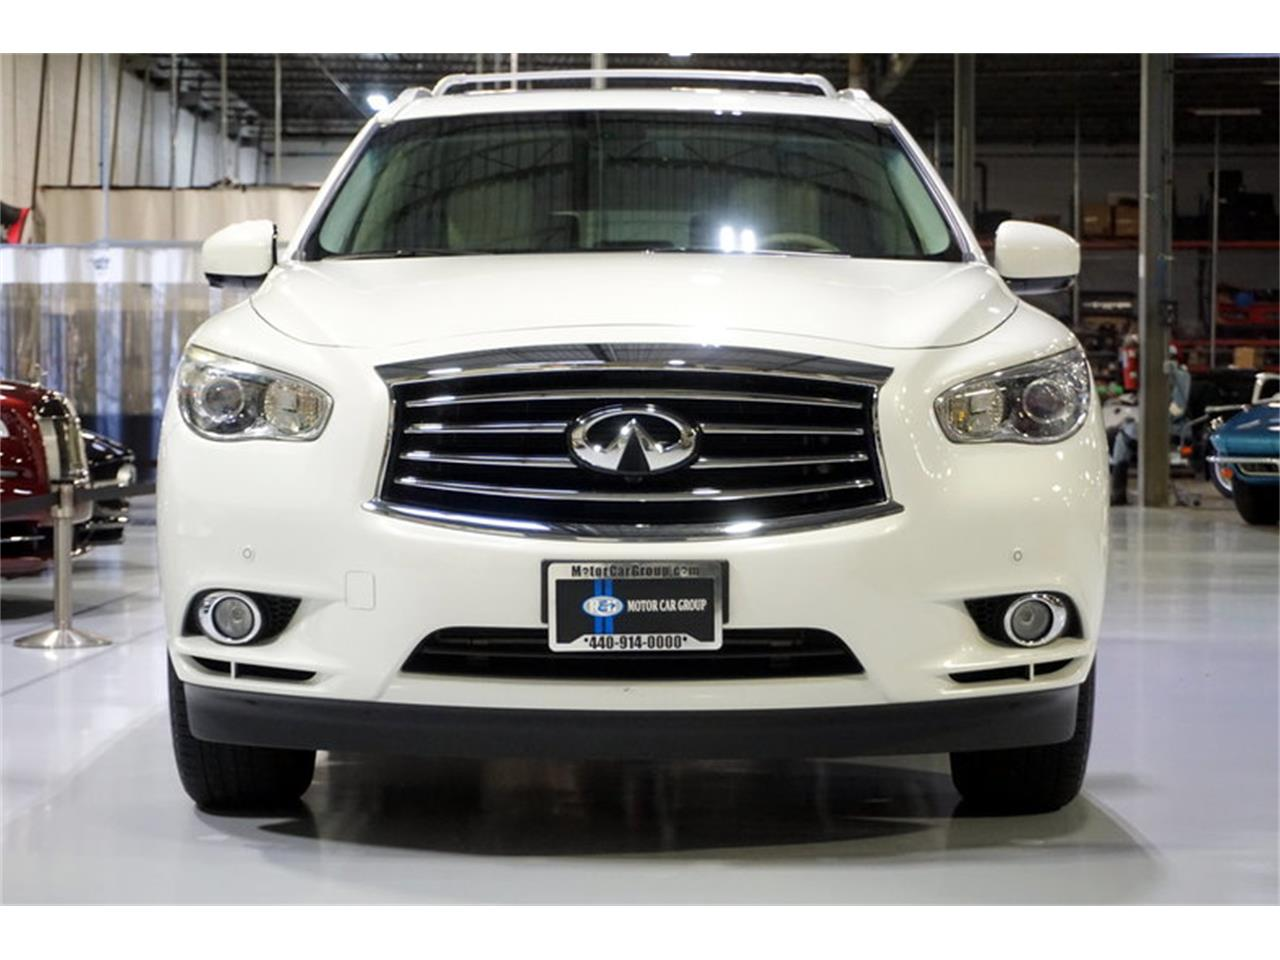 Large Picture of 2014 Infiniti QX60 located in Ohio - $28,990.00 Offered by R&H Motor Car Group - MD5Q